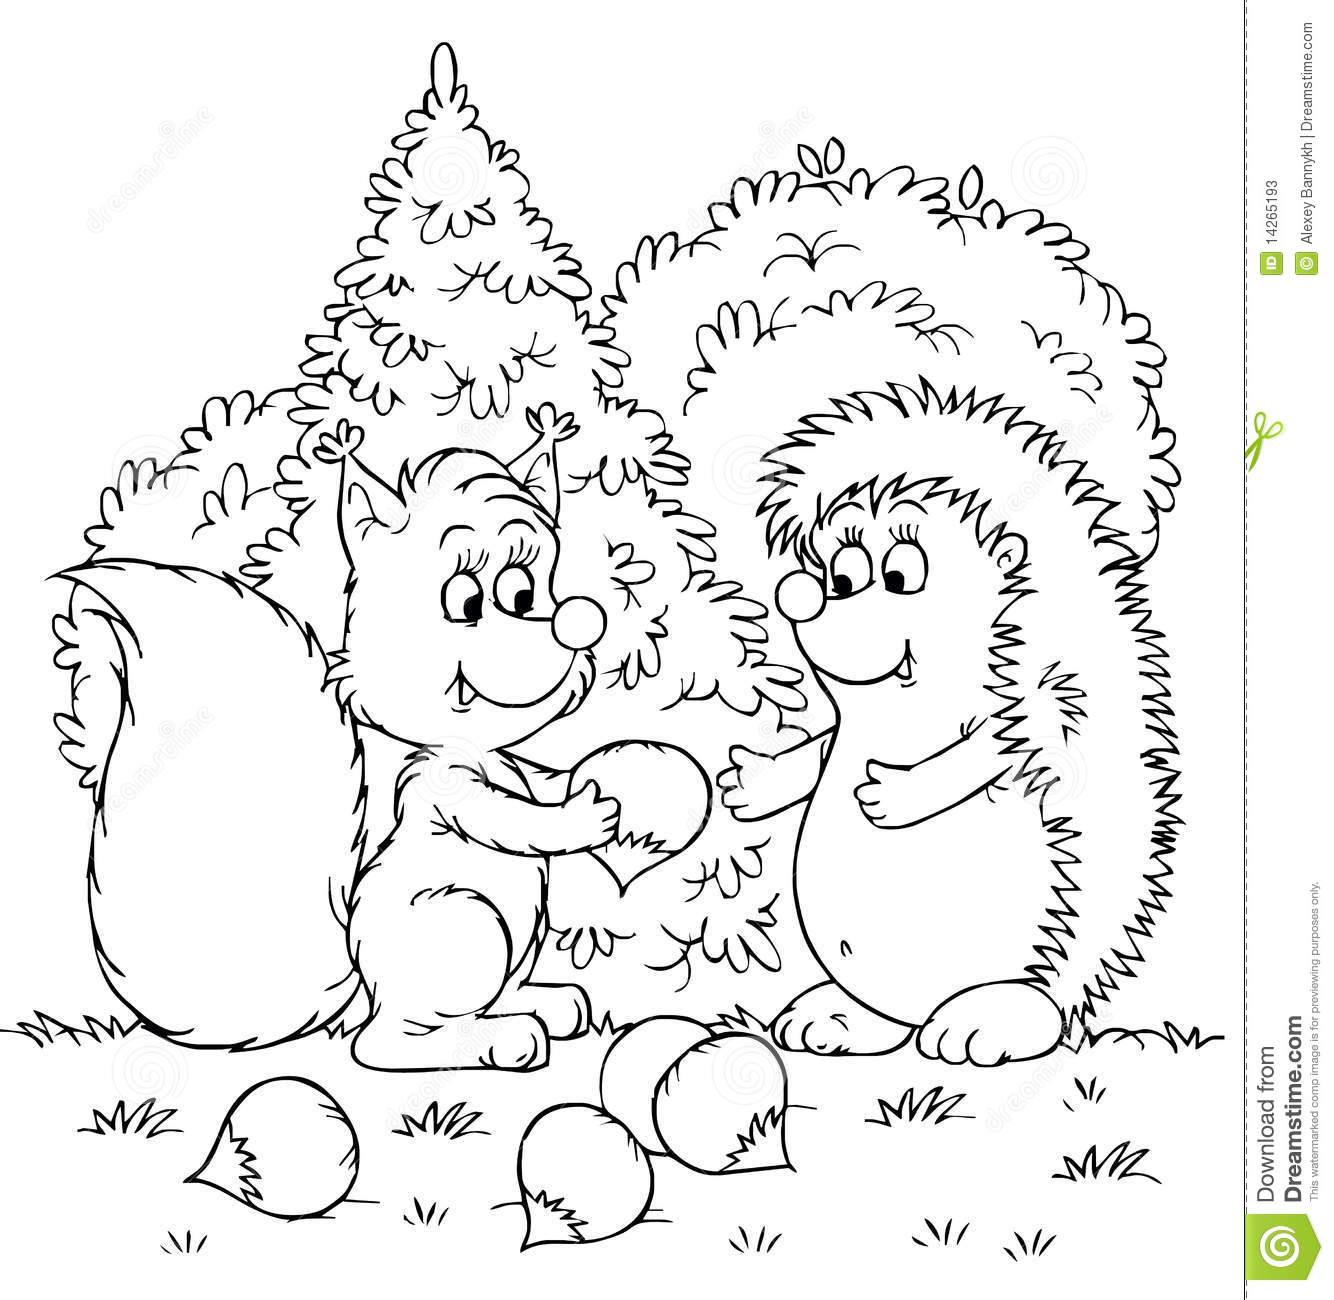 Black and white Illustration coloring Page Squirrel Shares Nuts